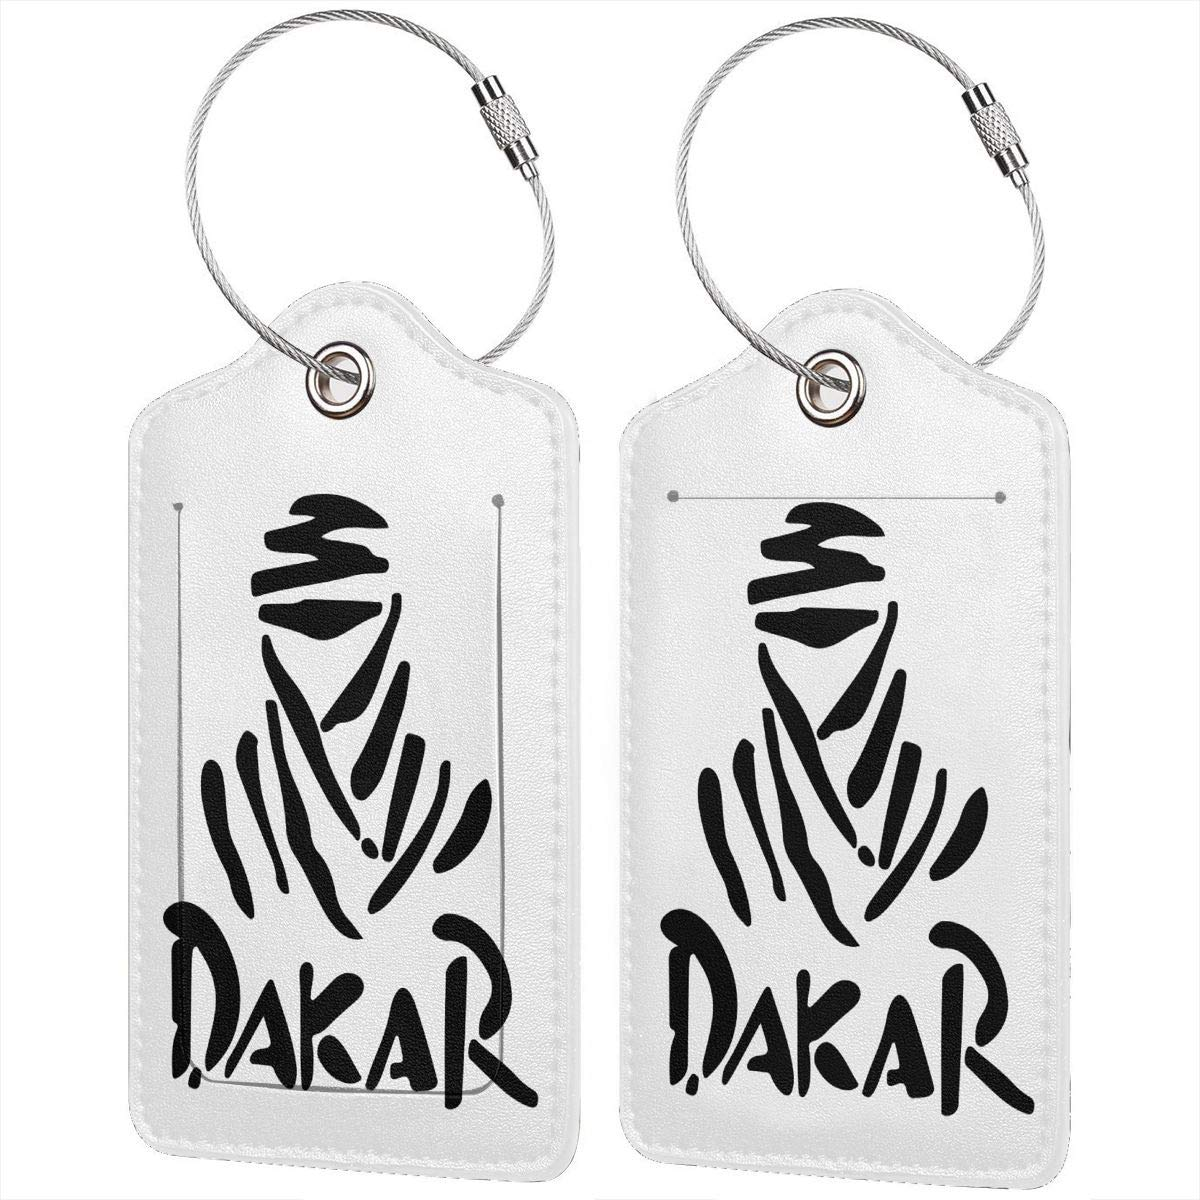 Dakar Labels With Privacy Cover For Travel Bag Suitcase Travel Accessory Luggage ID Tag